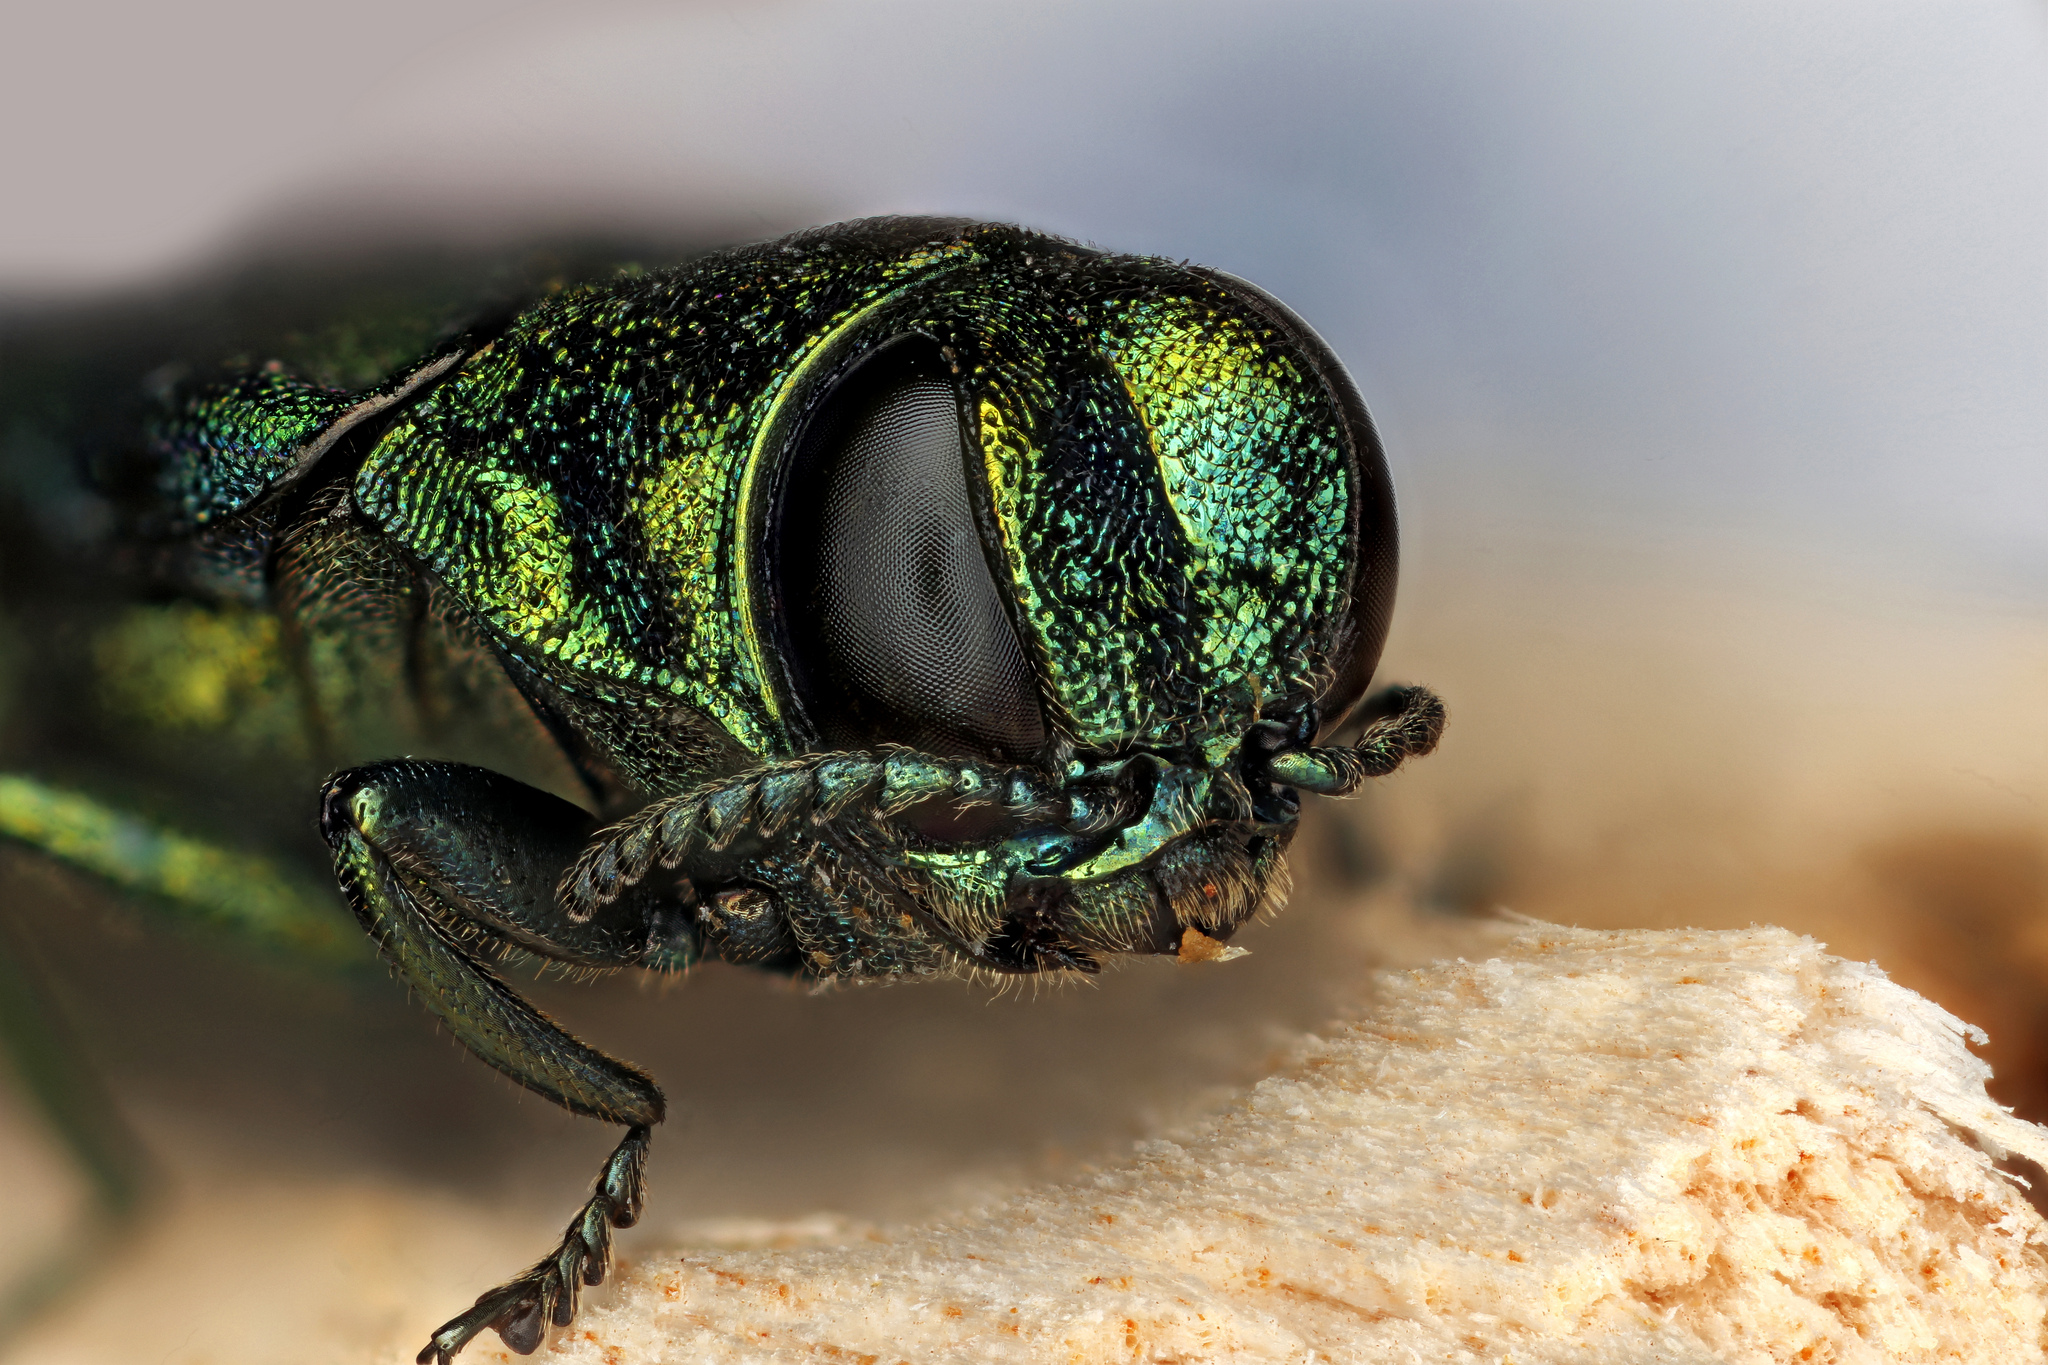 Insecta: Coleoptera